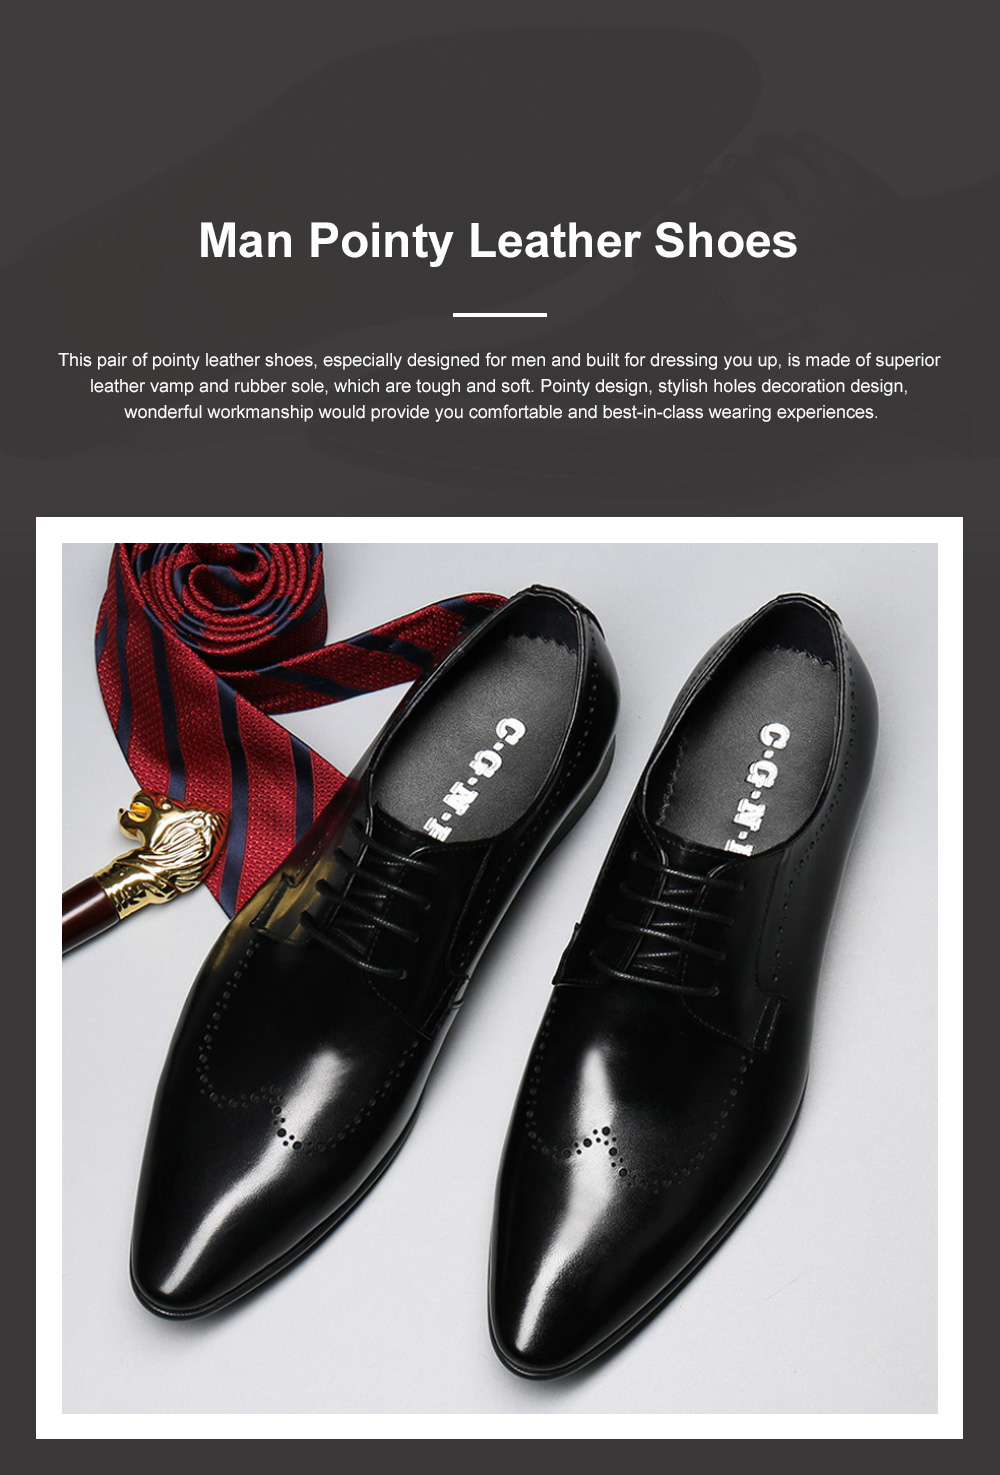 Males Vintage Stylish Minimalist Business Shoes Man Pointy Pint-tipped Leather Shoes with Anti-skid Rubber Sole 0